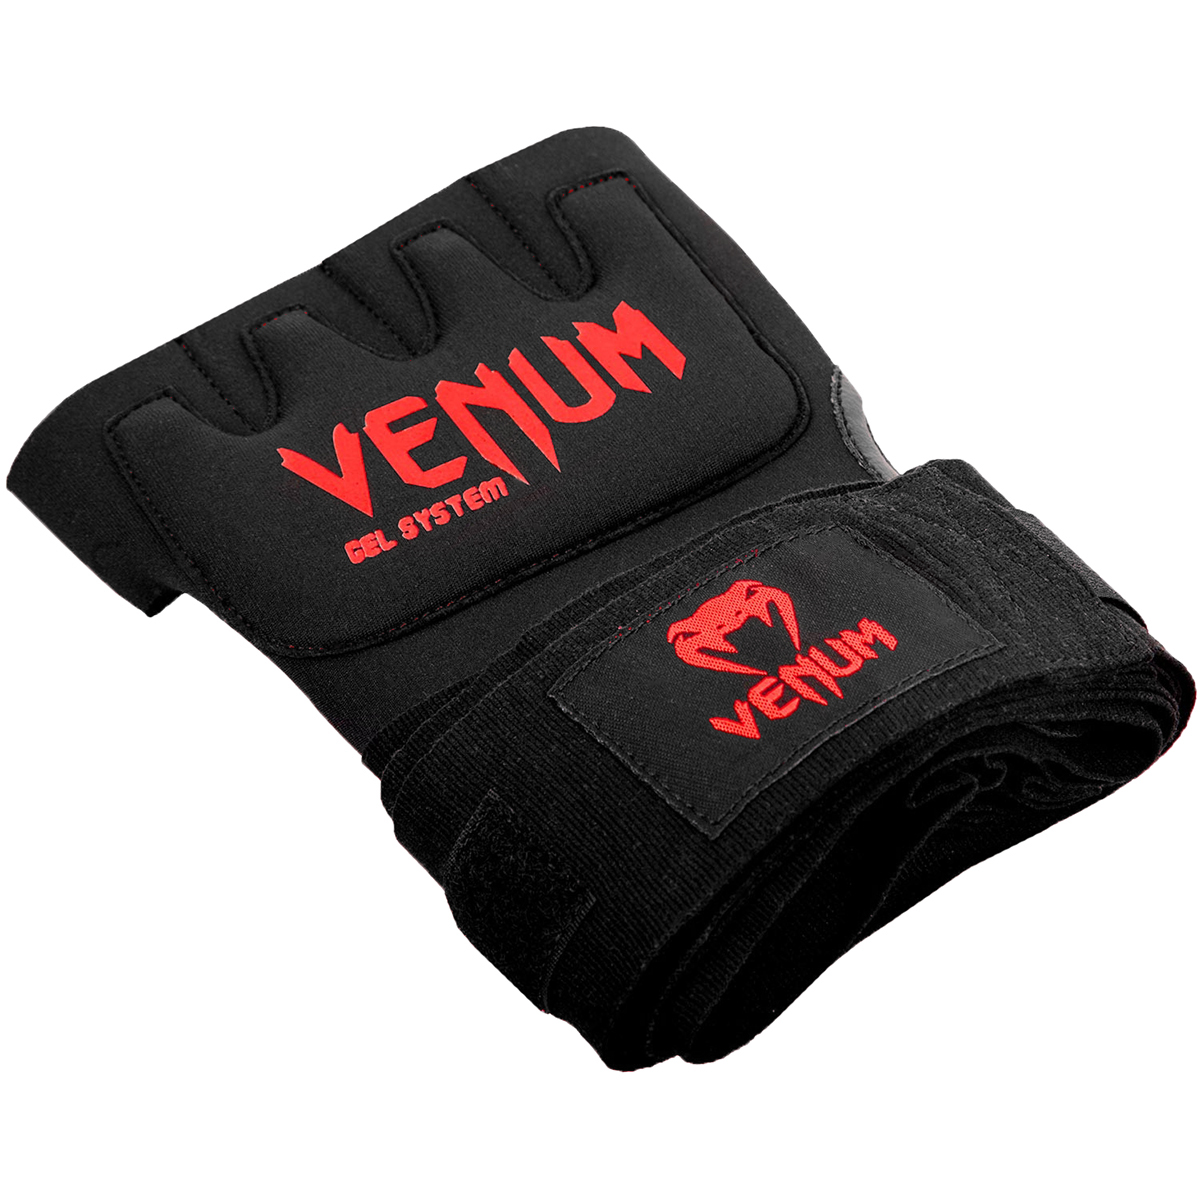 Venum-Kontact-Protective-Shock-Absorbing-Gel-MMA-Glove-Wraps thumbnail 7